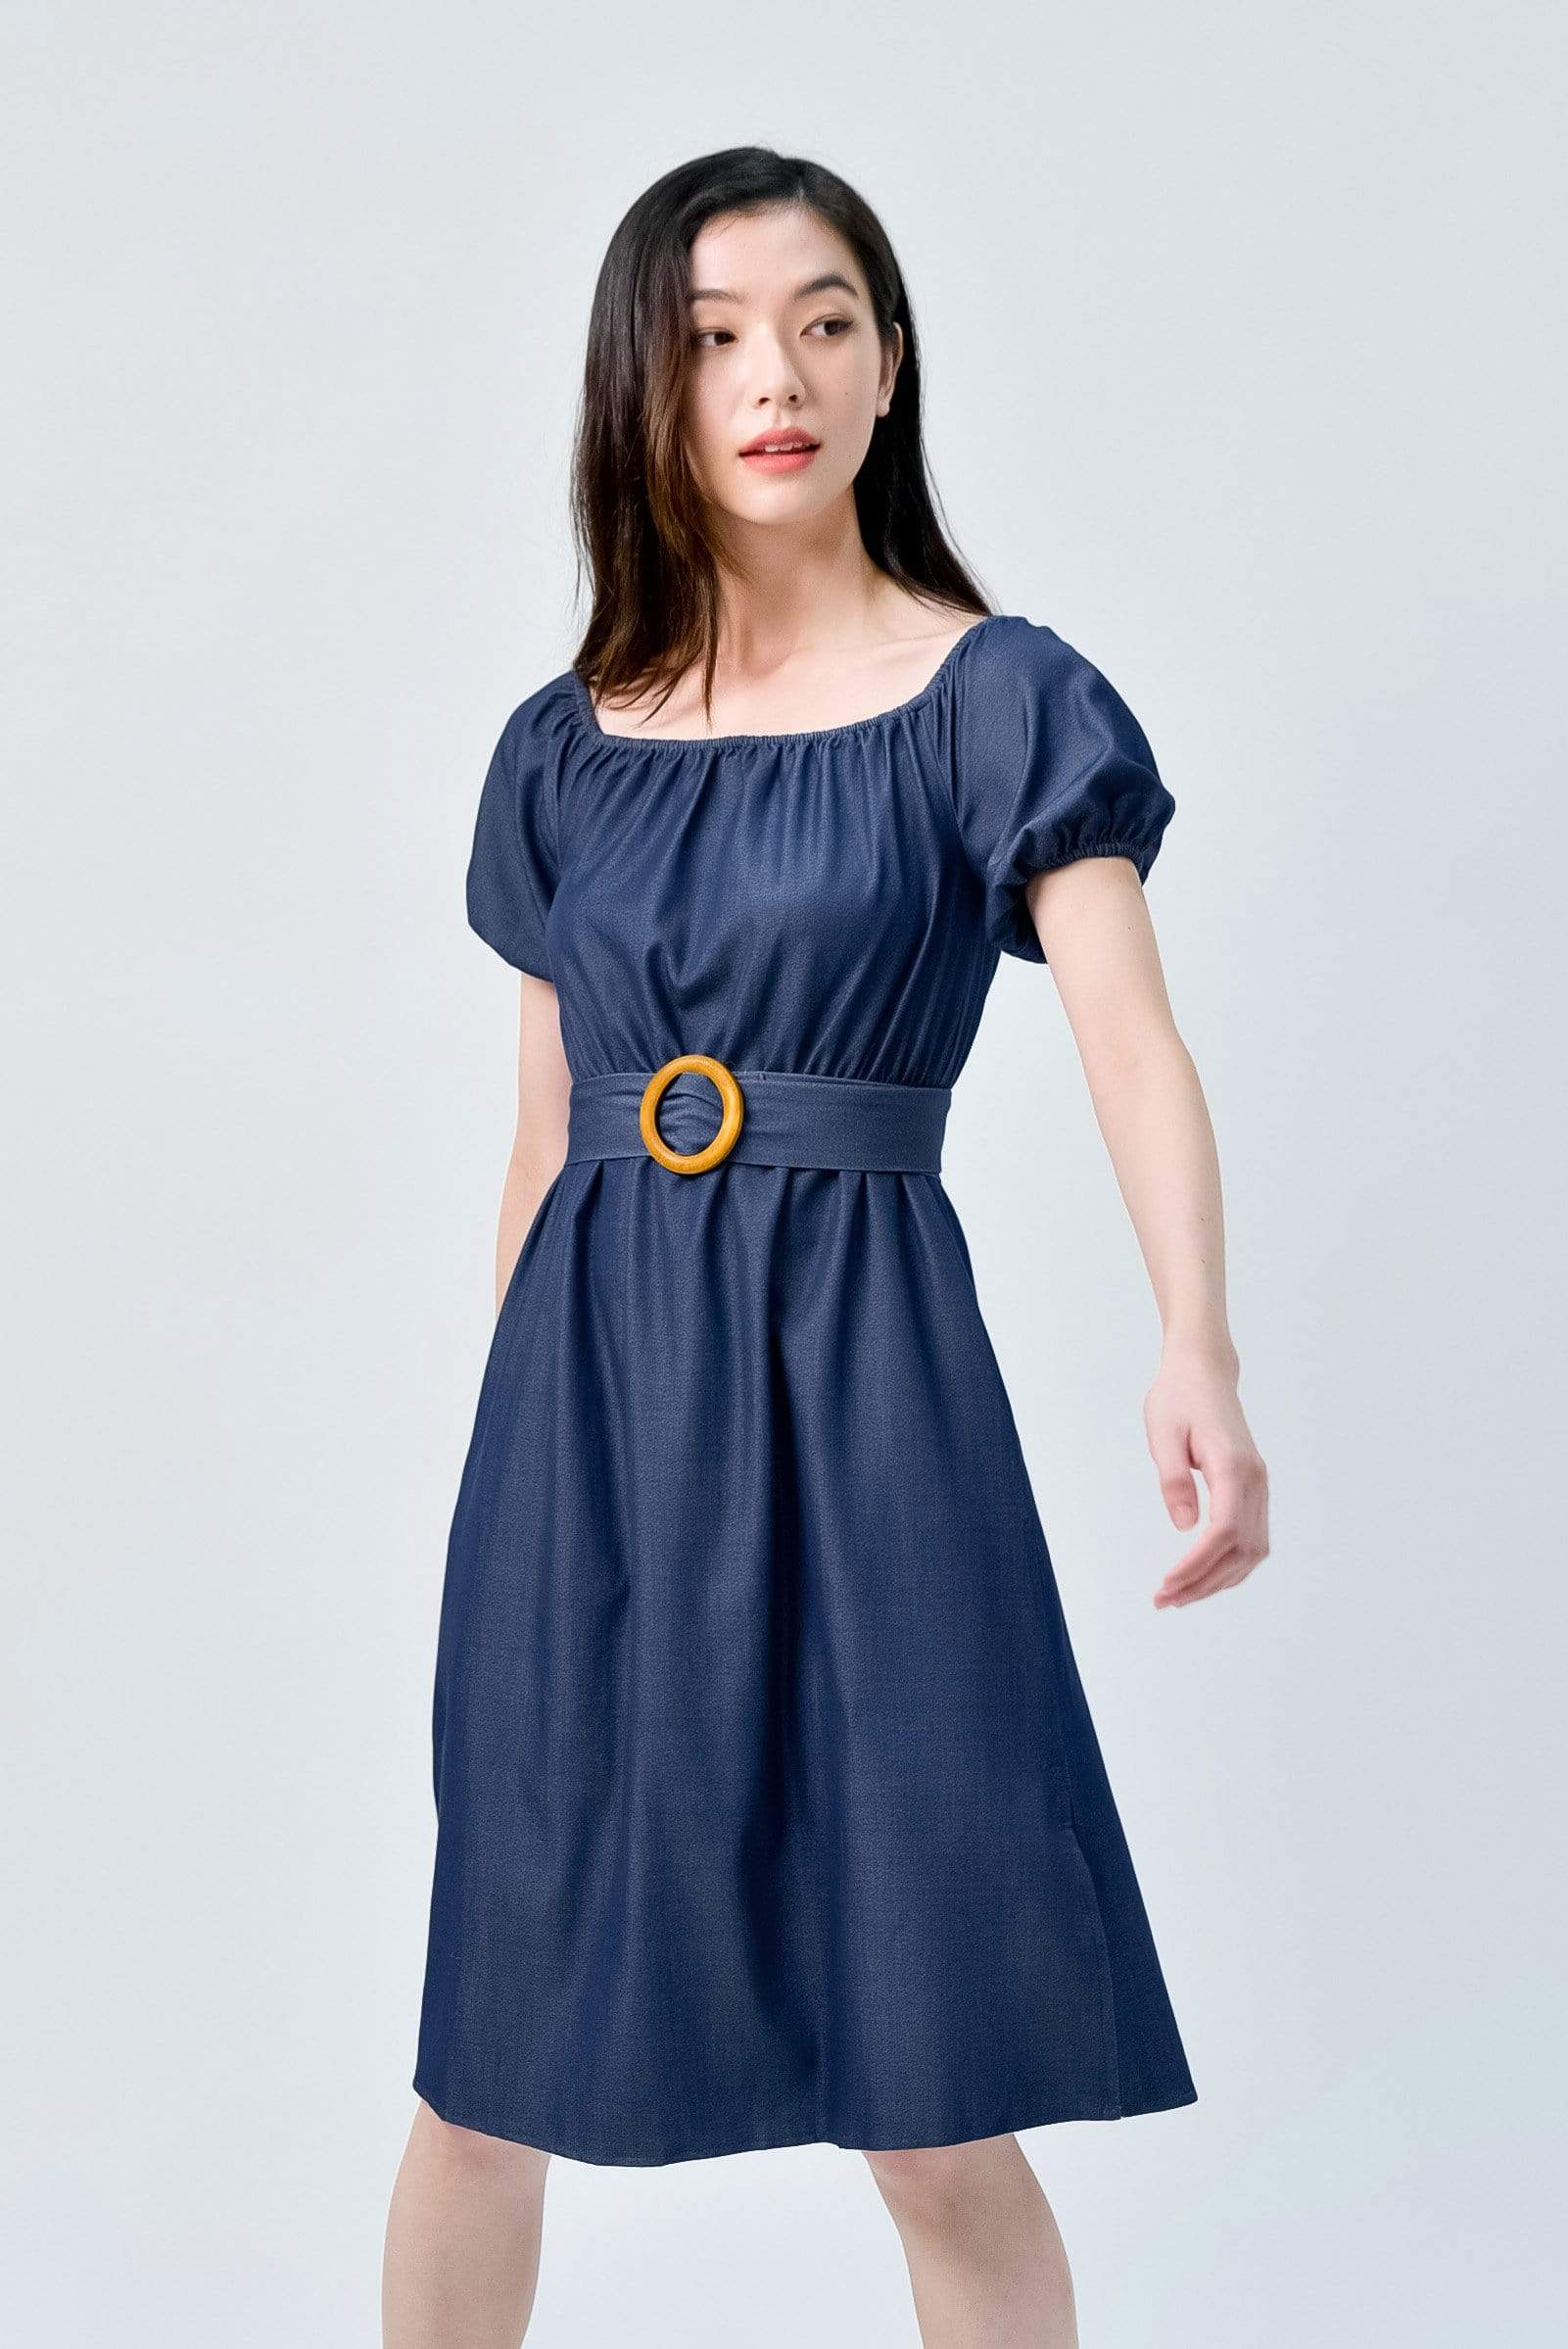 RACHELLE DARK DENIM PUFF-SLEEVES DRESS